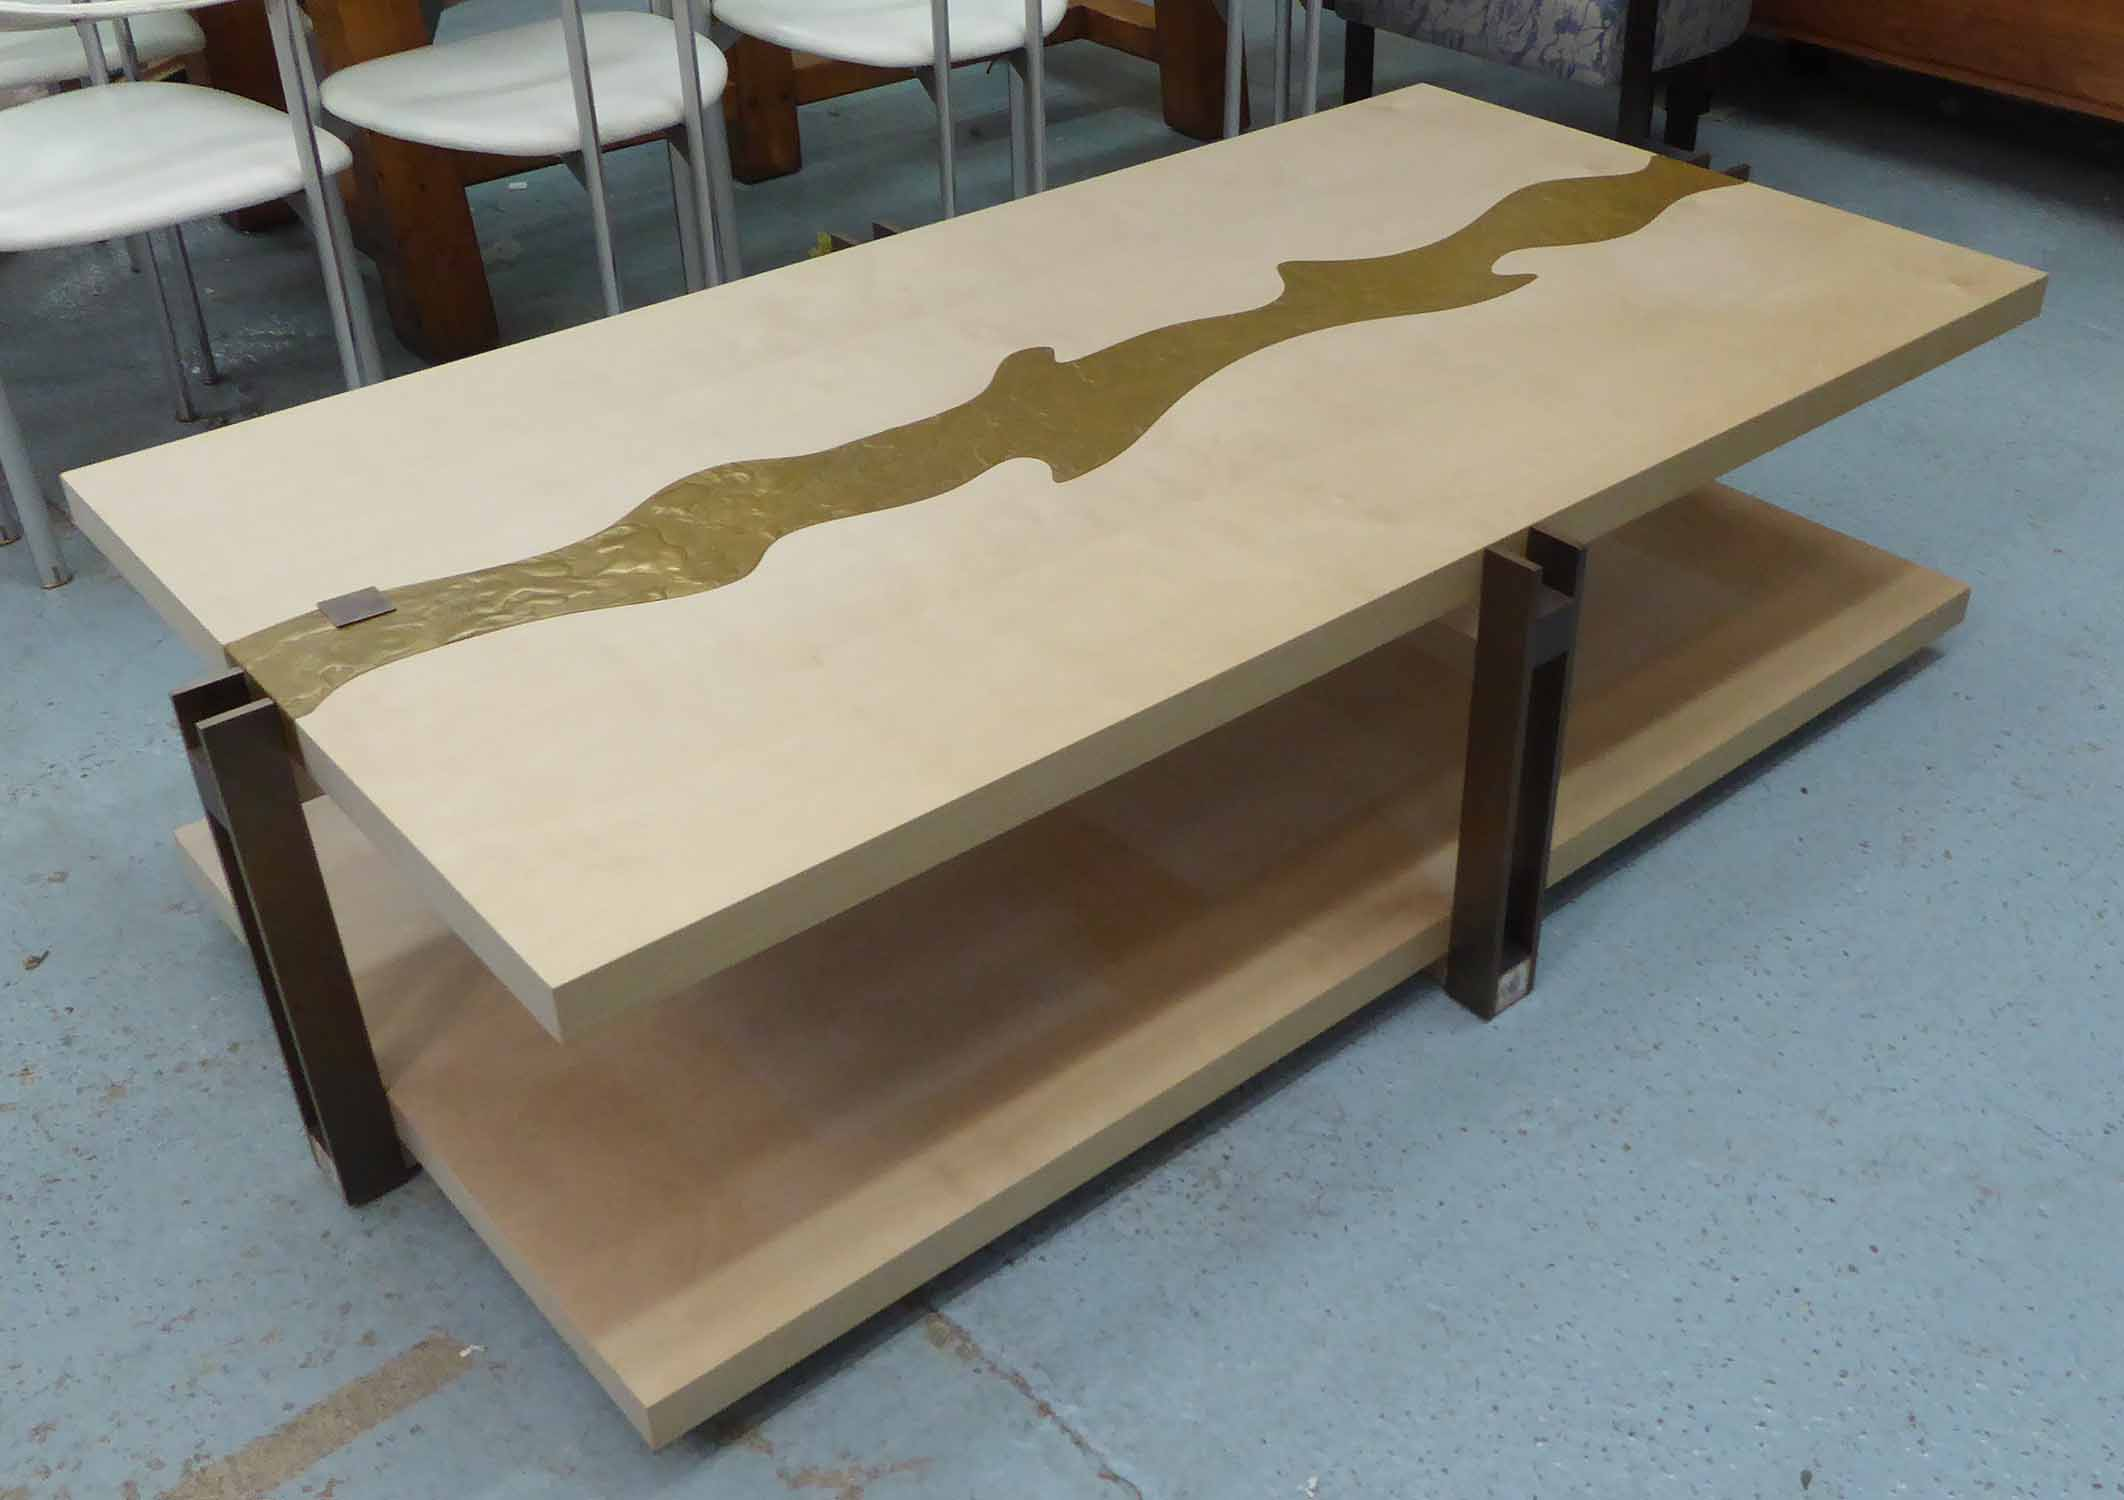 Lot 33 - LOW TABLE, with embossed metal centre streak and undertier on metal supports, 176cm x 95cm x 45cm H.